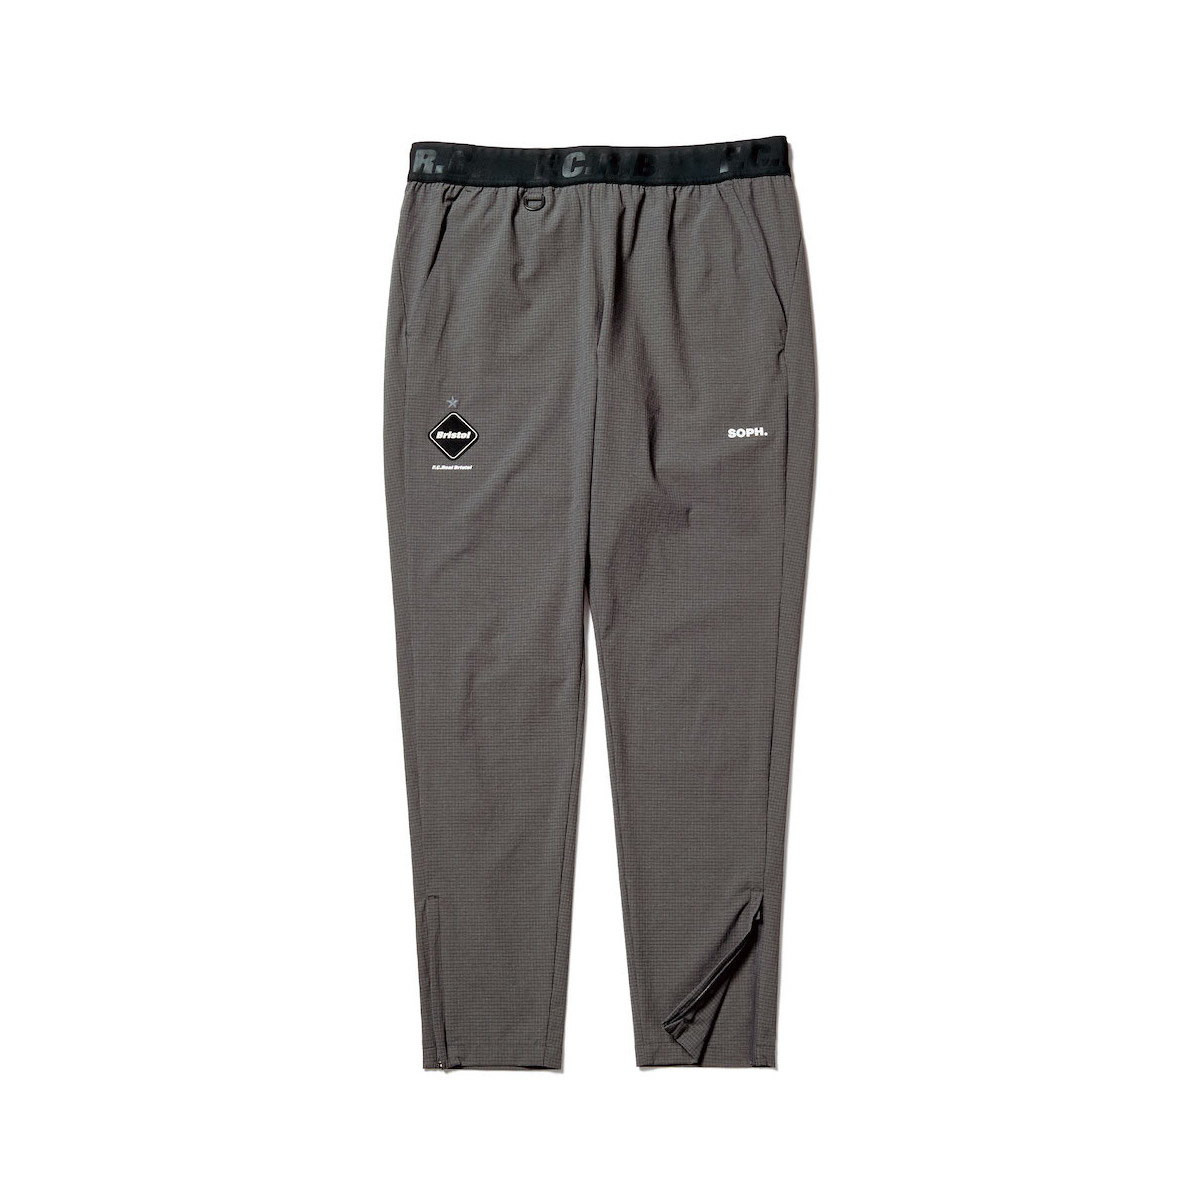 F.C.Real Bristol / STRETCH LIGHT WEIGHT EASY PANTS (Gray)正面